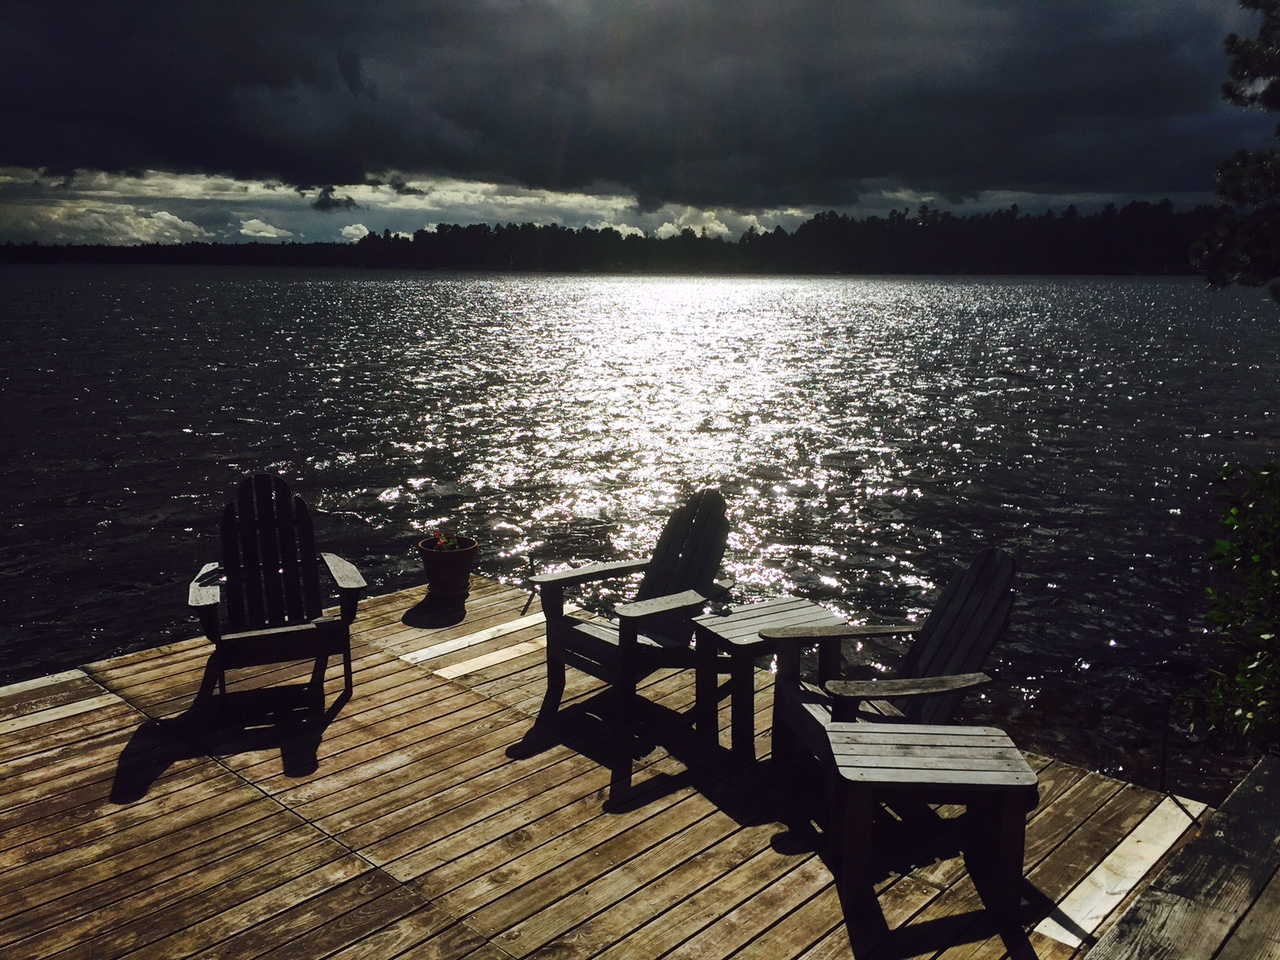 Dock with Storm Approaching by Elizabeth McLanahan